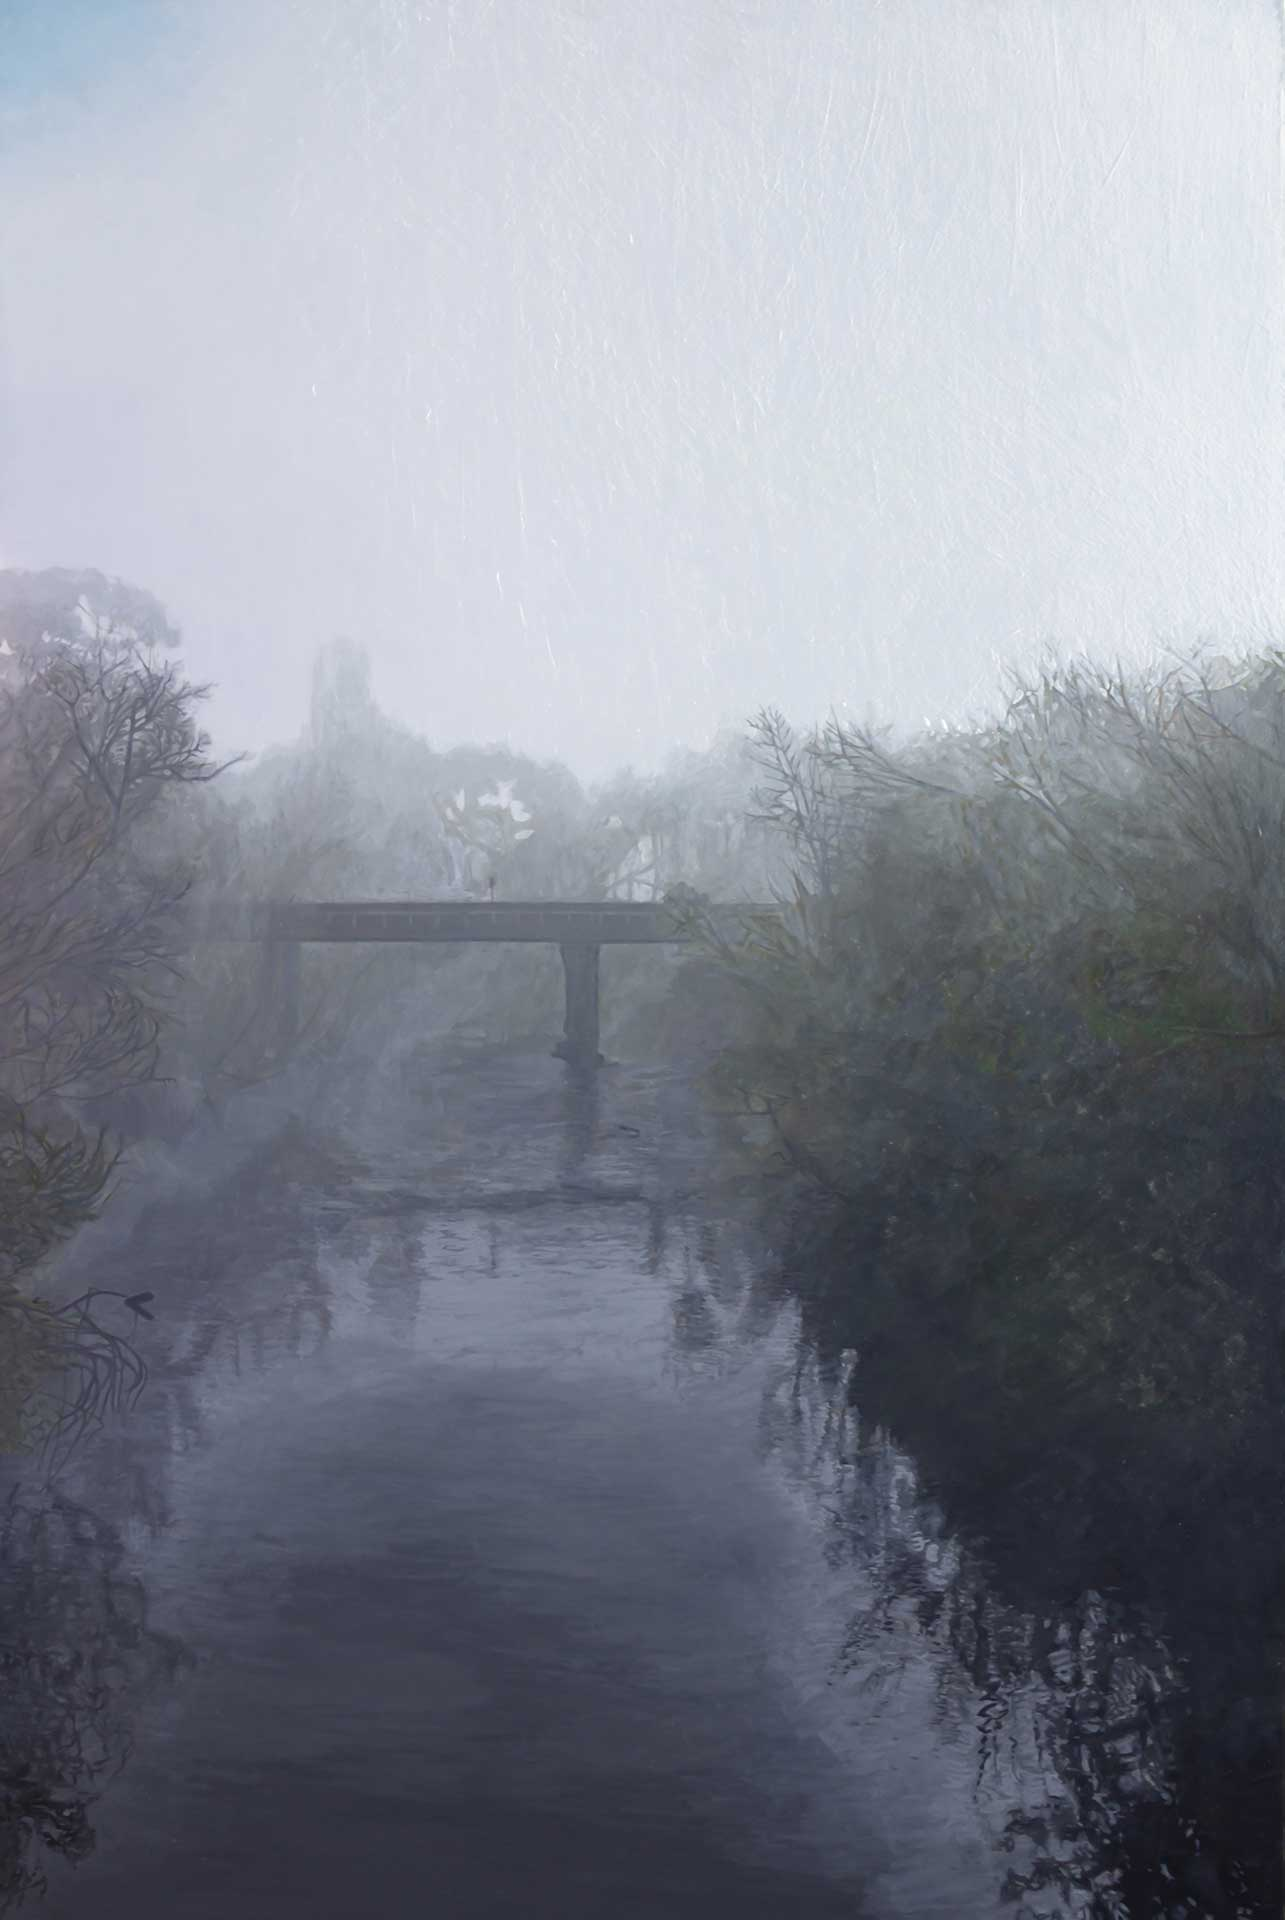 Photorealist painting - Fog at Yarra Glen